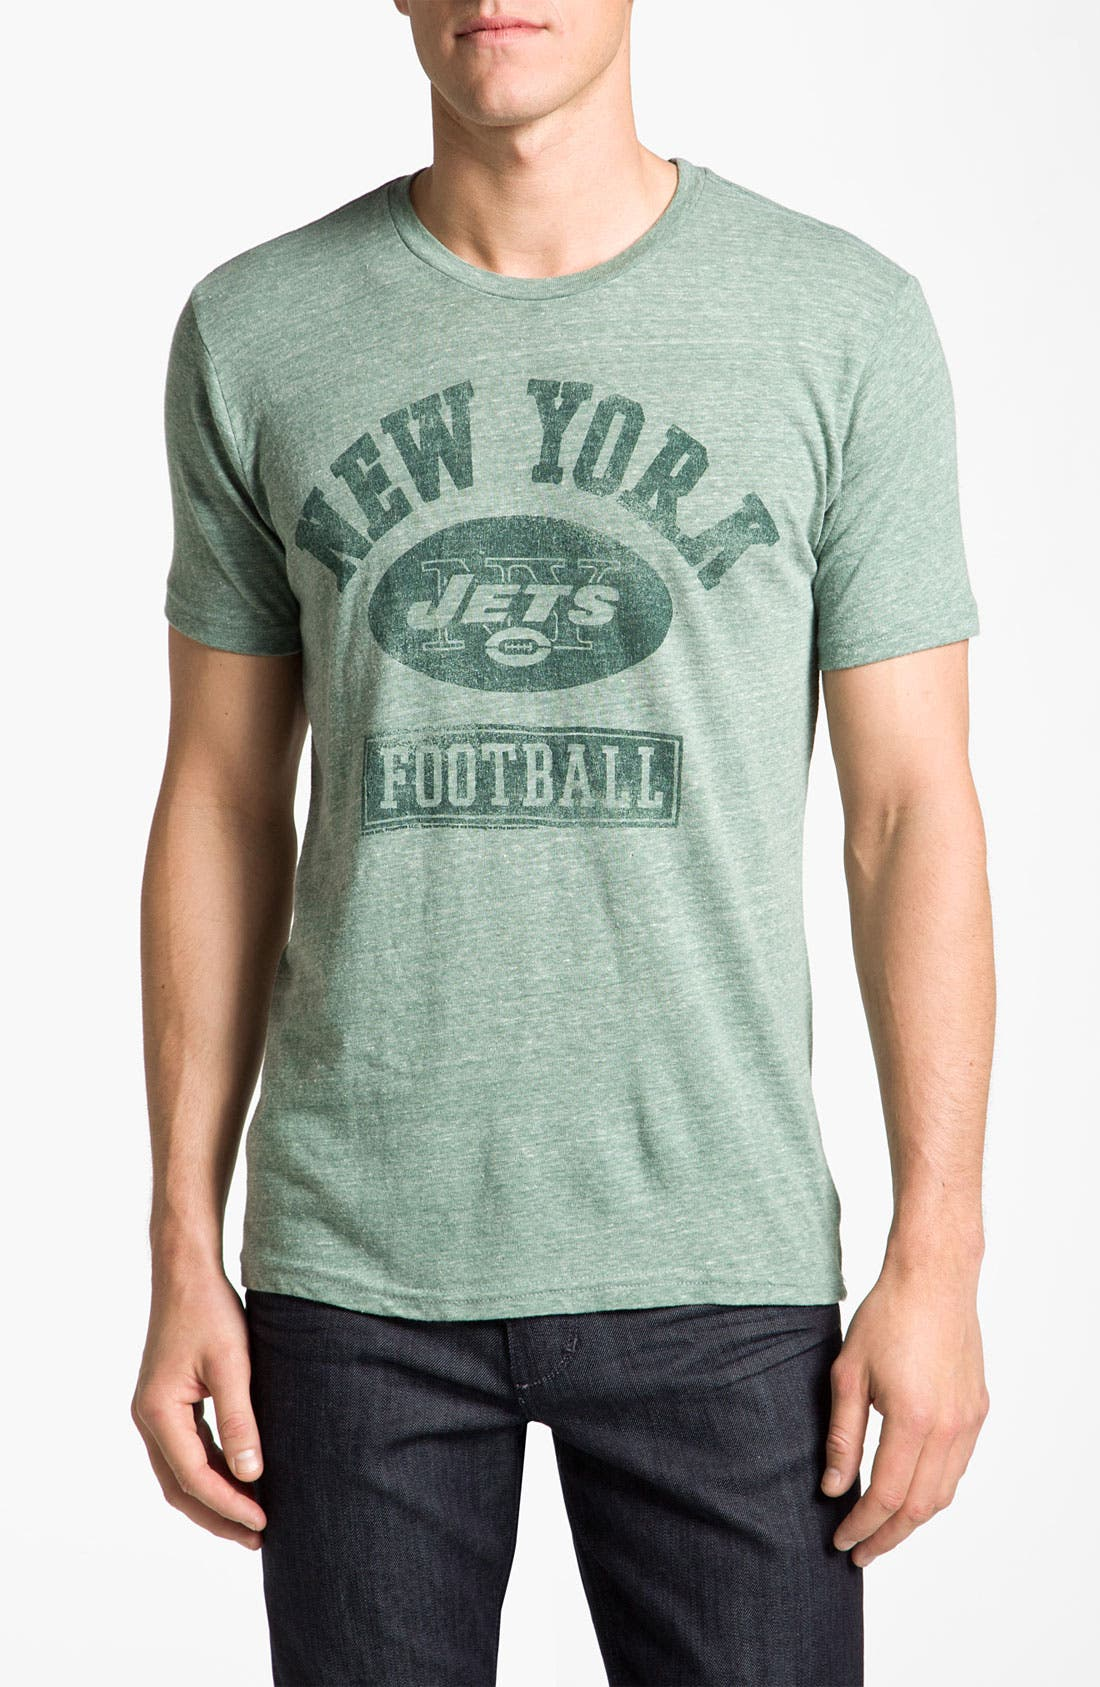 Alternate Image 1 Selected - Junk Food 'New York Jets' T-Shirt